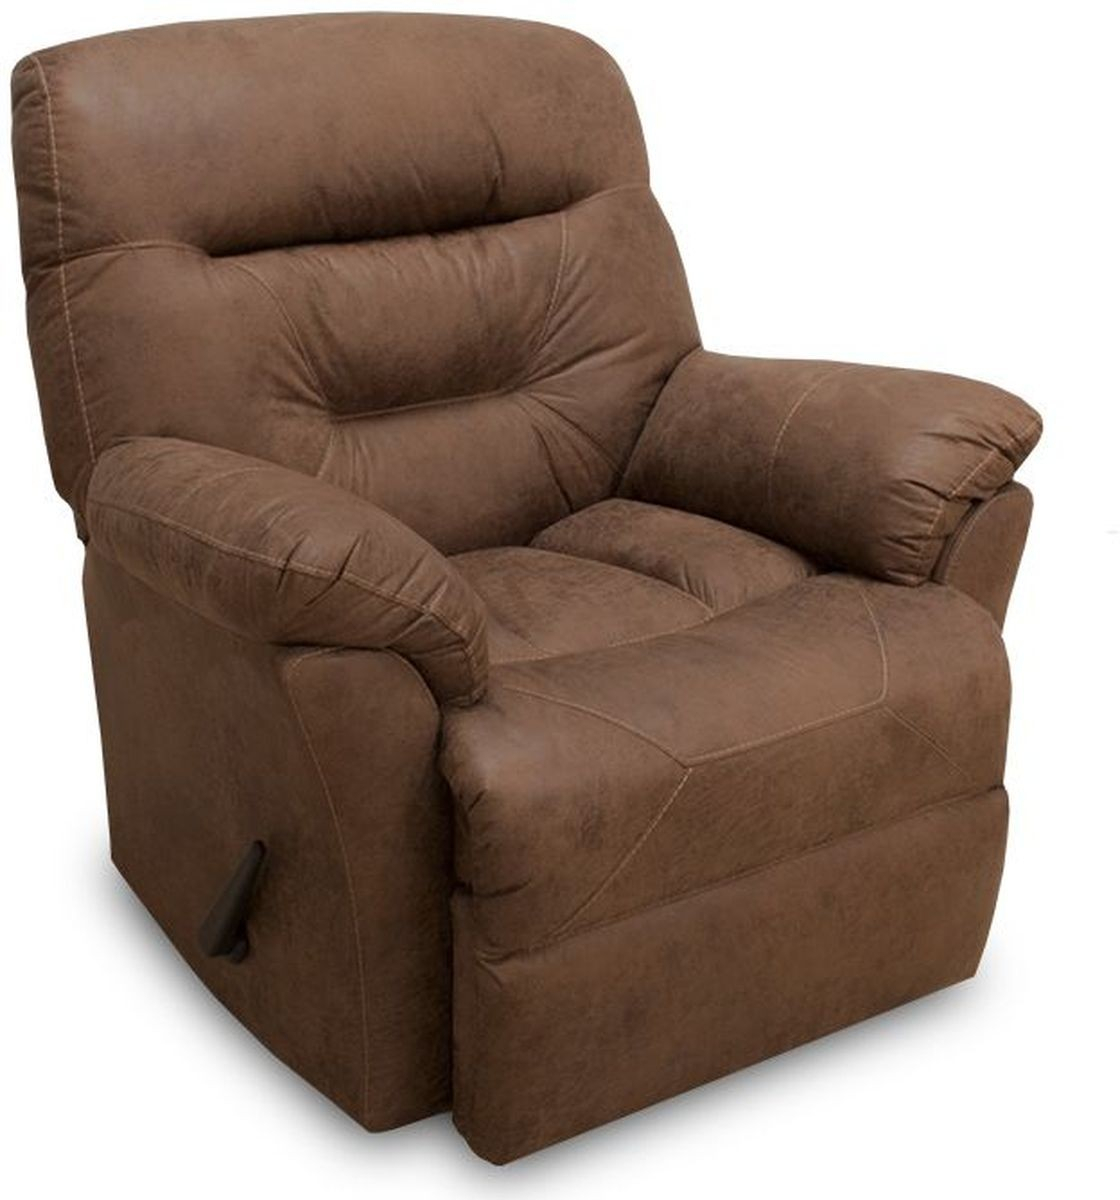 Franklin Prodigy Swivel Rocker Recliner In Bandero Tobacco | Local In Swivel Tobacco Leather Chairs (Image 8 of 20)